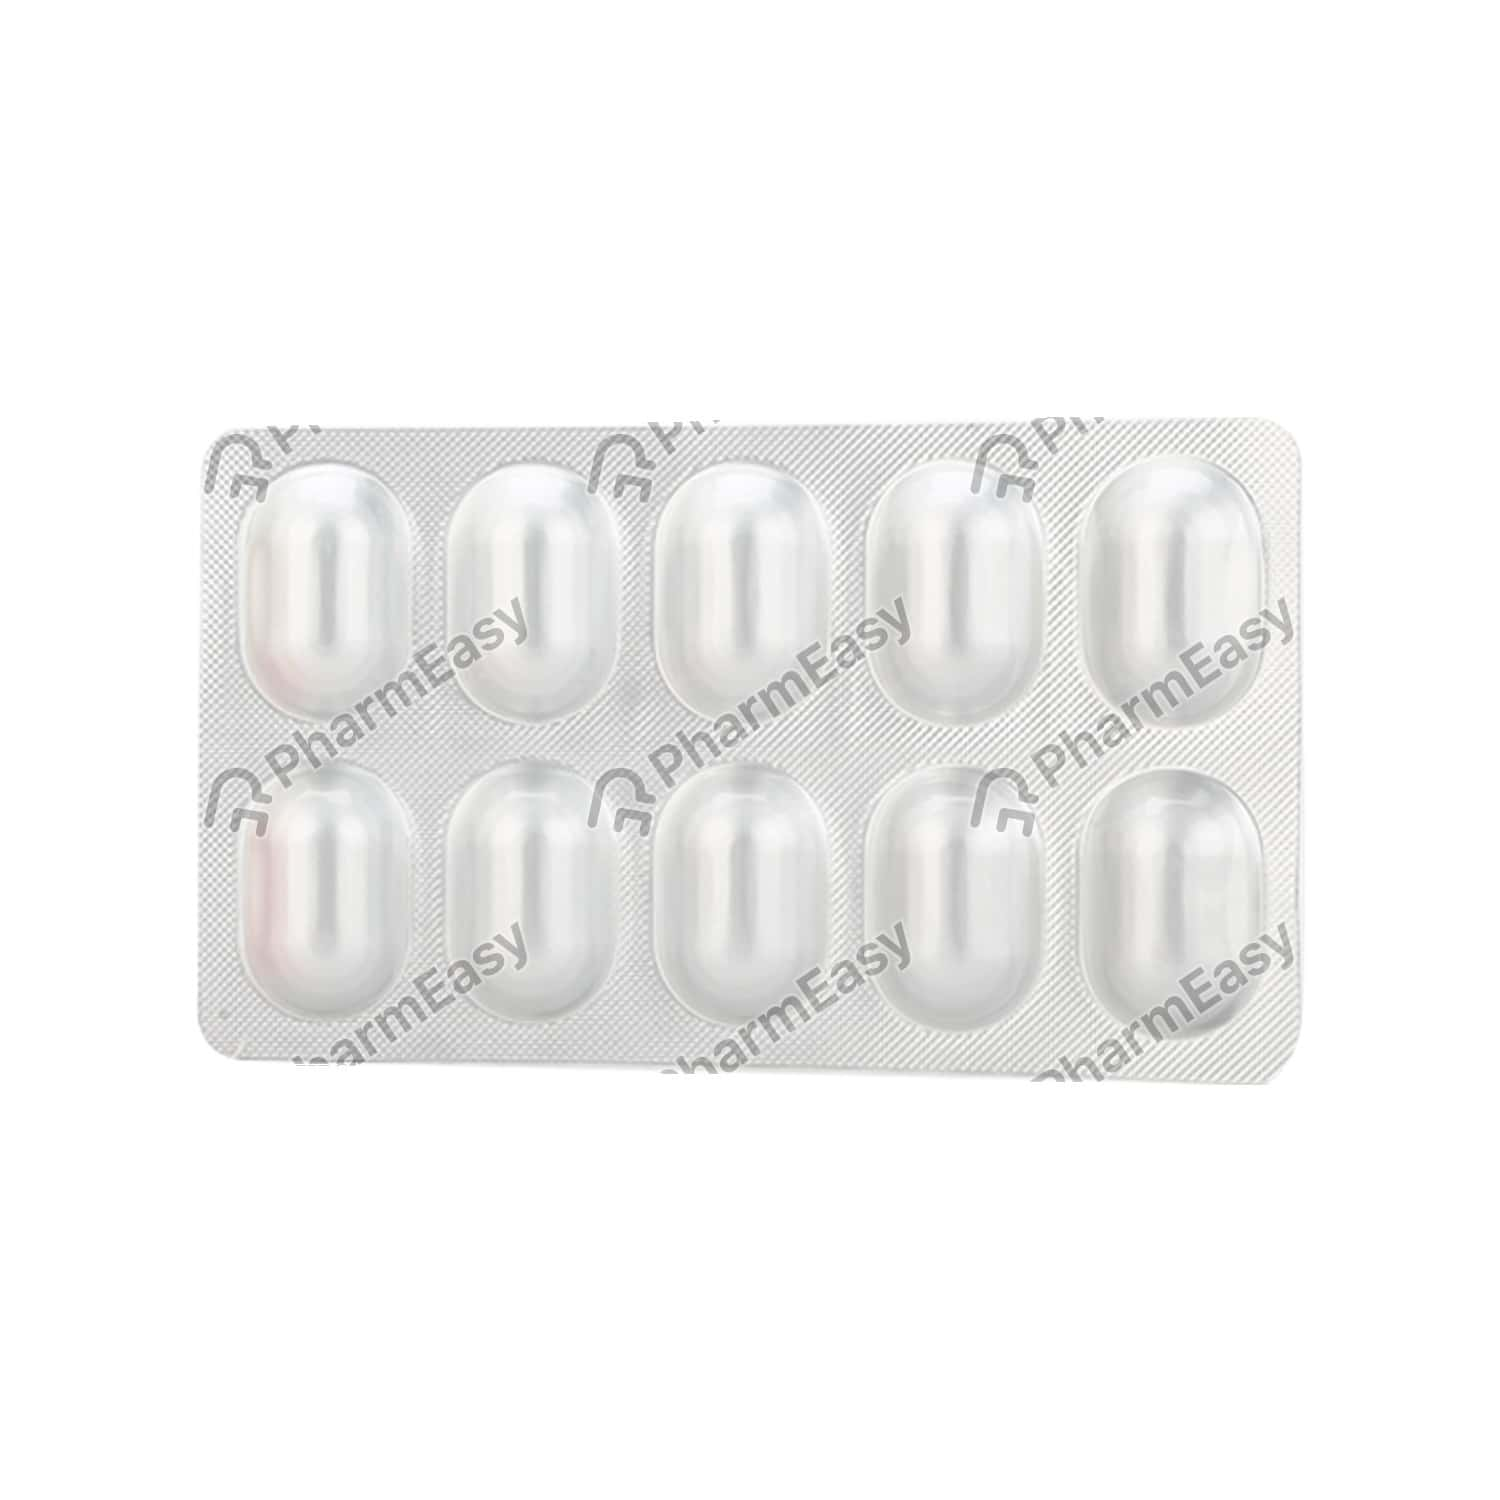 Carnitor 500mg Tablet